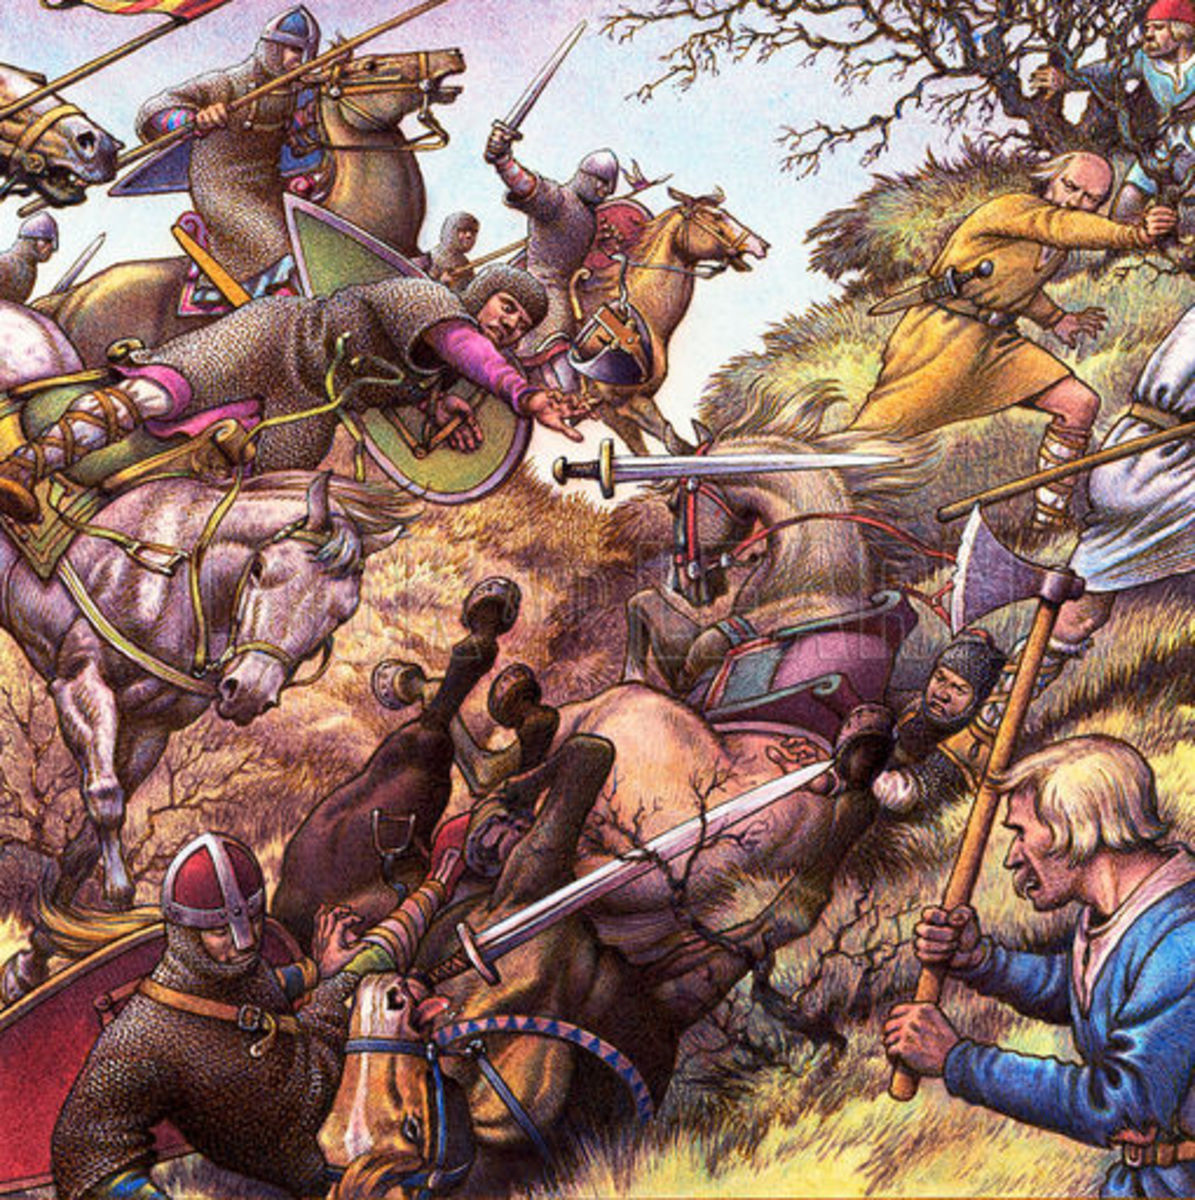 However cavalry could be cornered or ambushed in woodland or confined spaces - one such clash took place at the side of Caldbec Hill where it dipped into a ravine. The ravine went nowhere and the Normans were trapped, losing many to arrows or axes